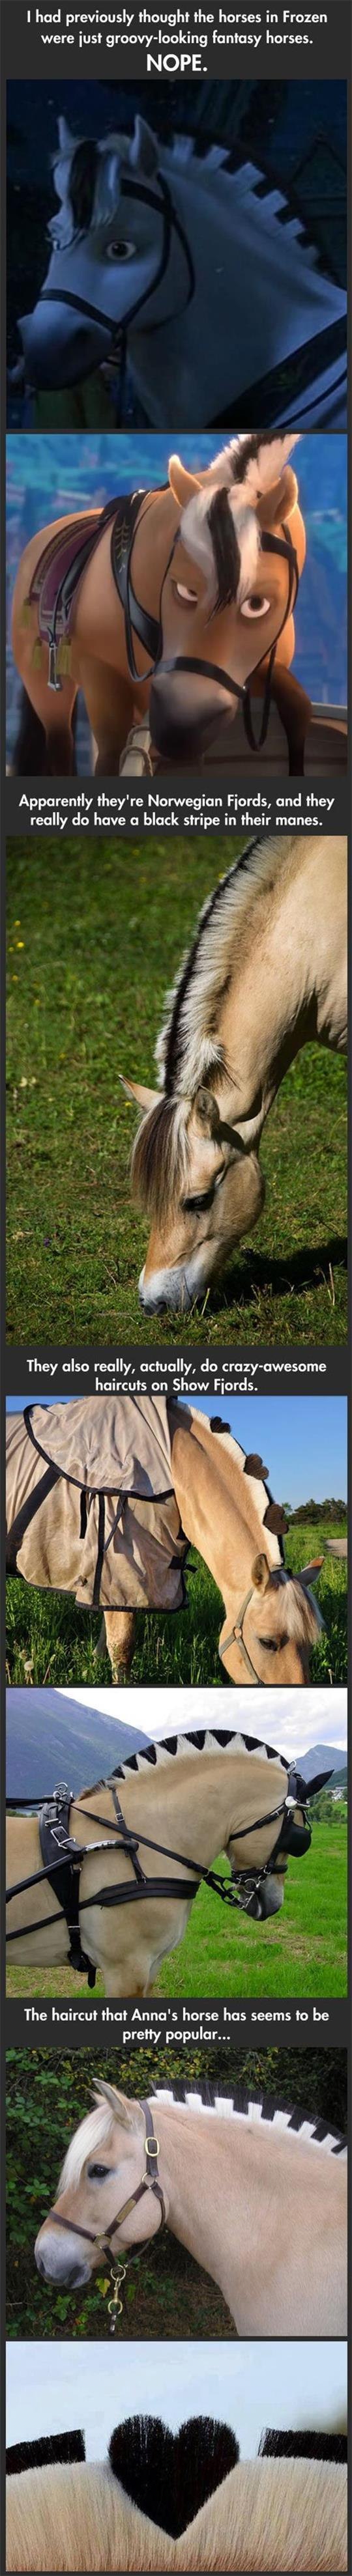 Some Interesting Facts About The Horse In Frozen. - I want one of these horses!